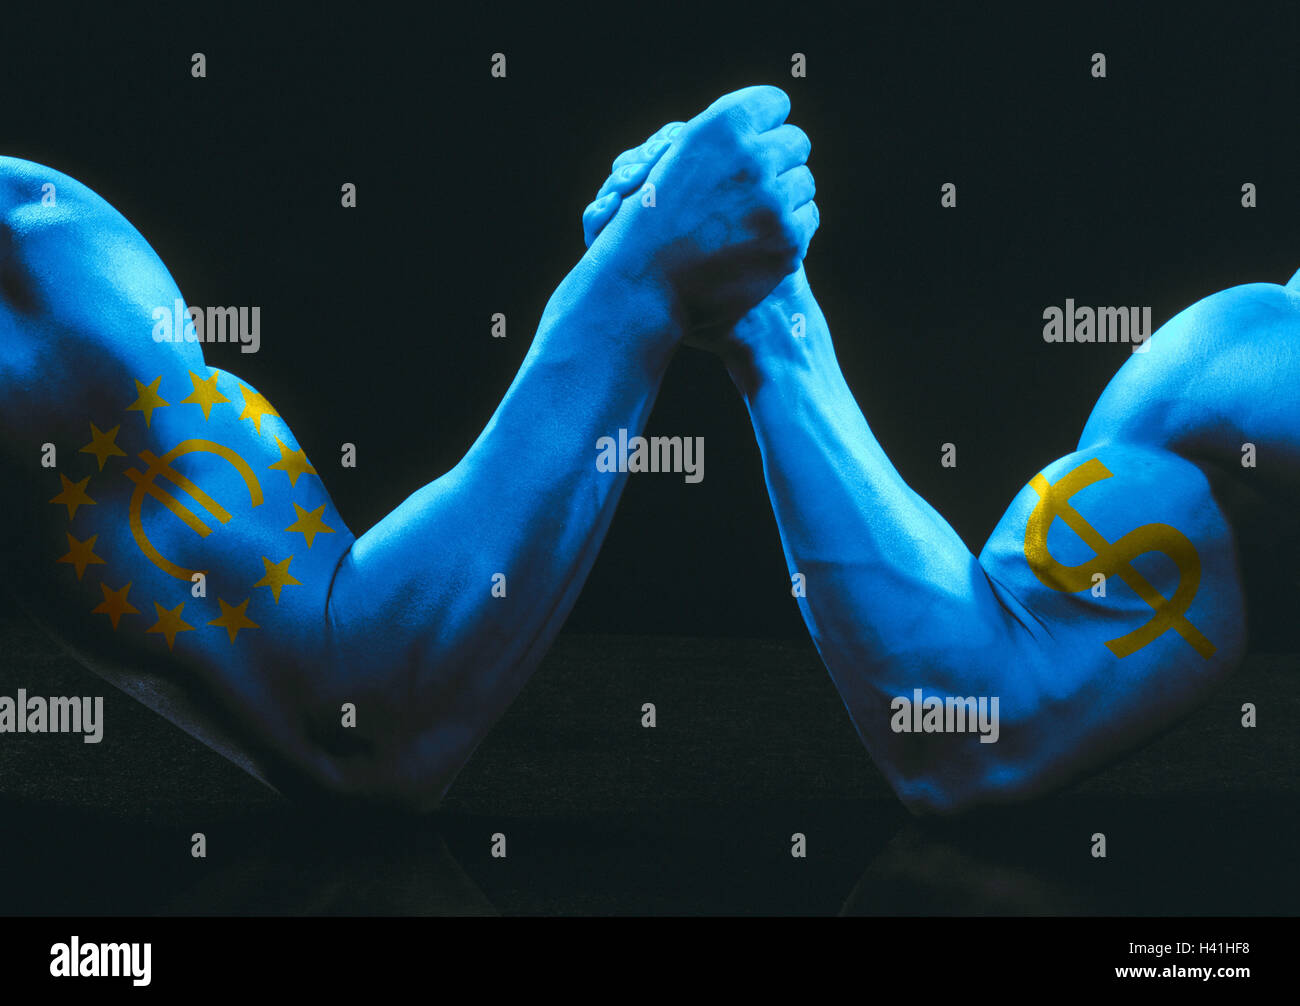 Men, athletic, detail, Indian wrestling, biceps, icons, euro, dollar, man's arms, icon, conception, contention, - Stock Image